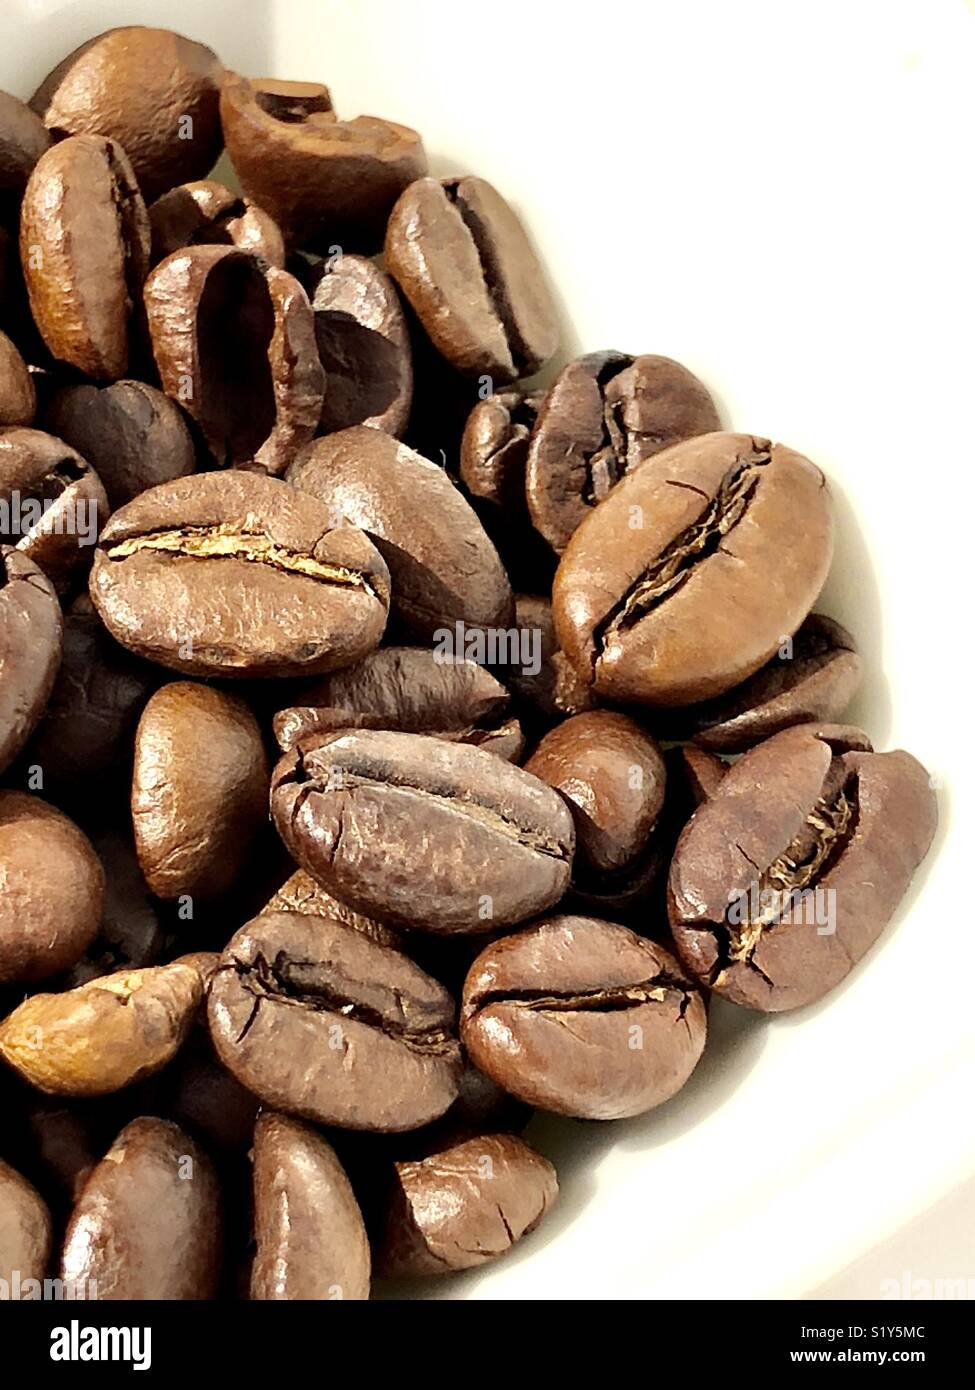 Coffee beans roasted - Stock Image